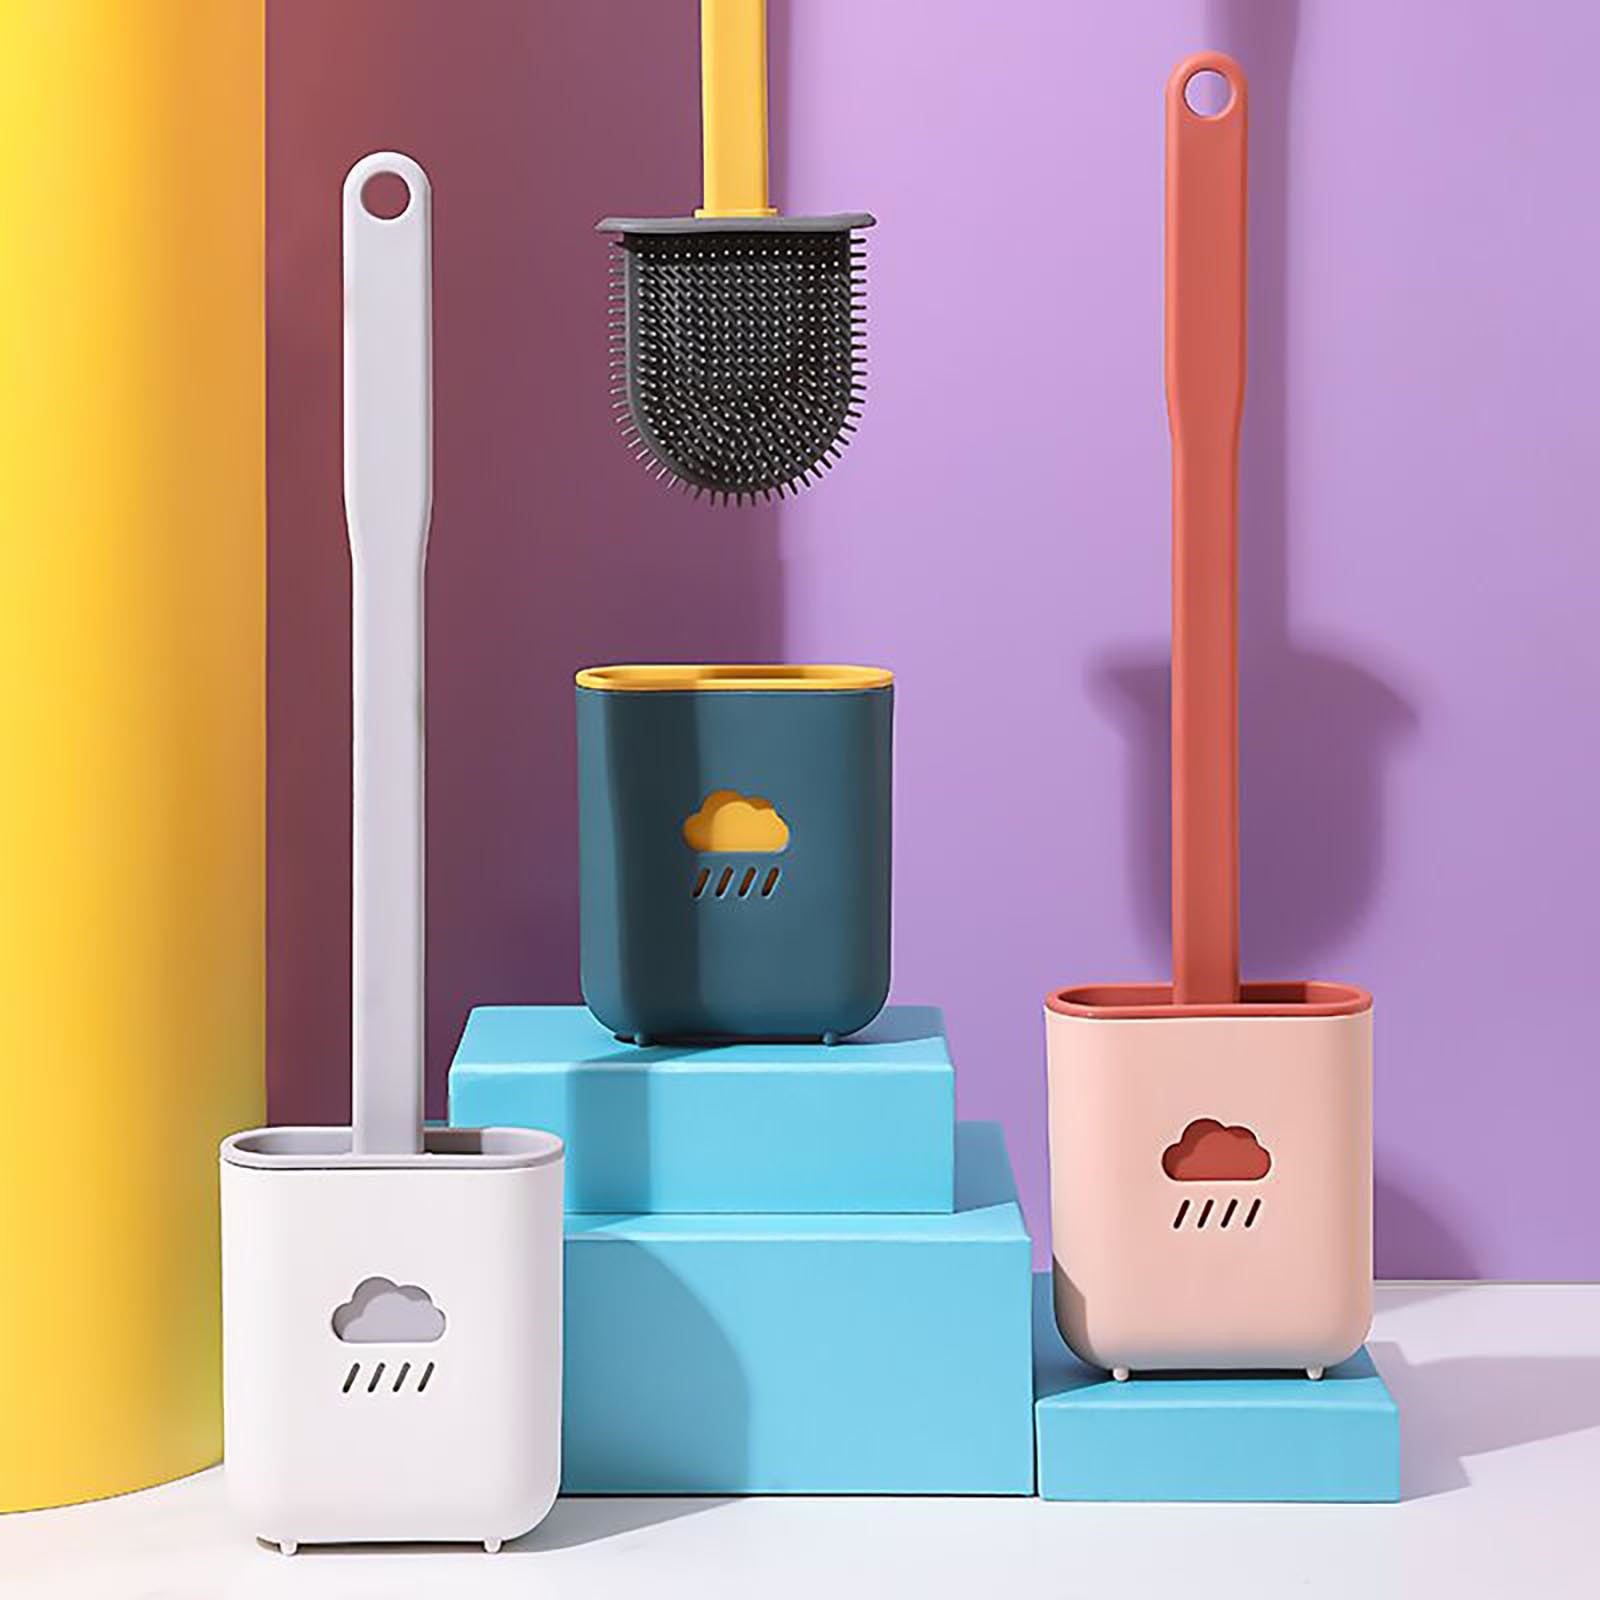 Silicone Toilet Brush With Toilet Brush Holder Creative Cleaning Toilet Brush Set Home Bathroom Decoration Accessories Декор